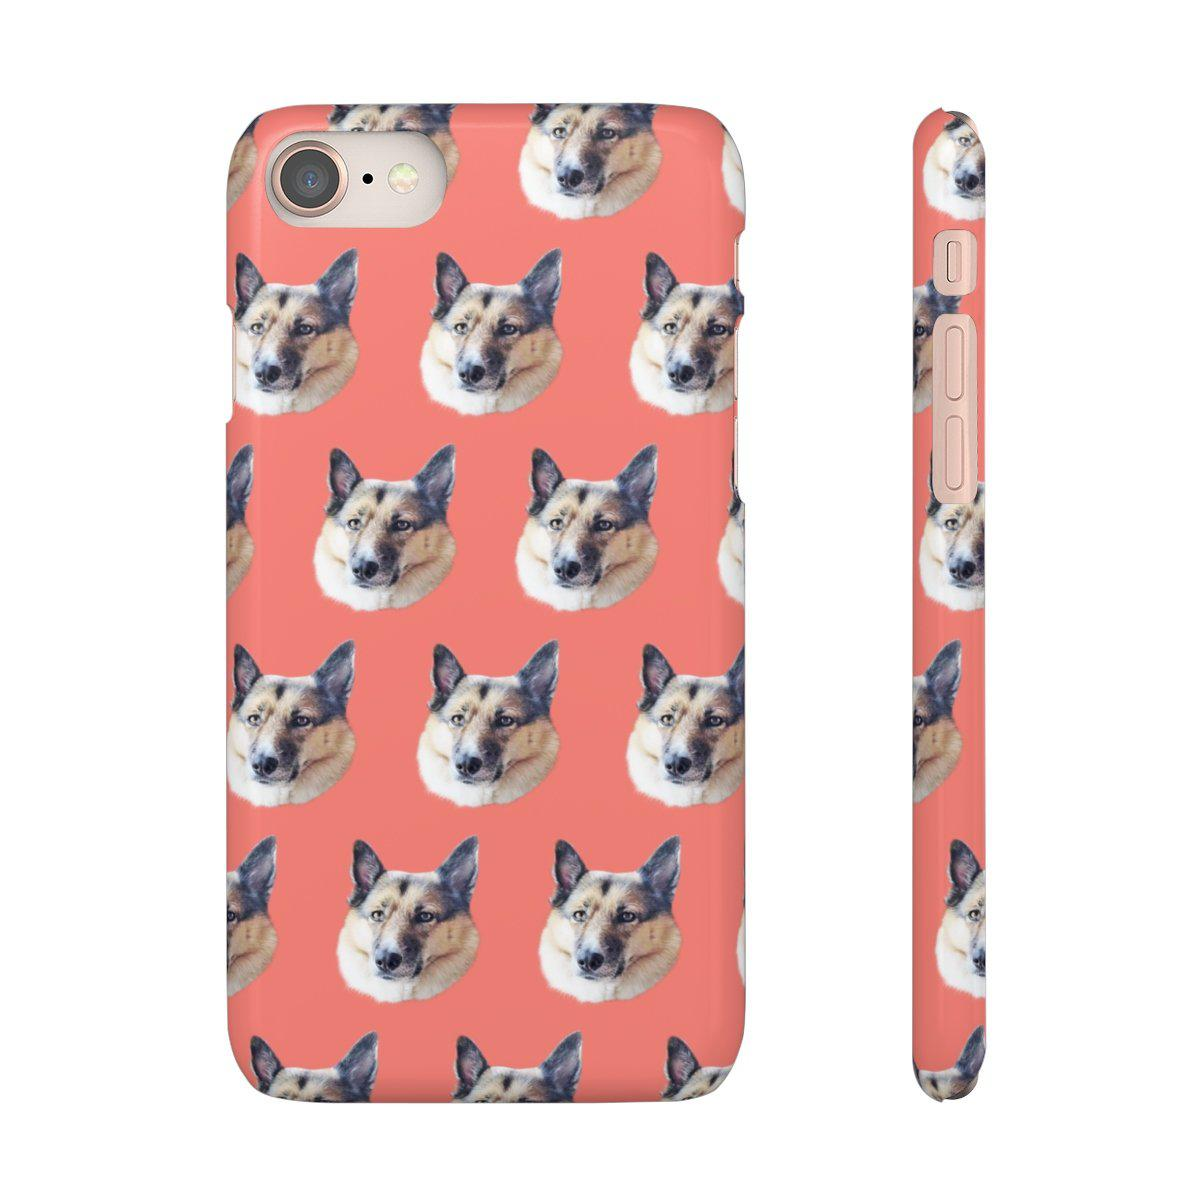 Your Dog on Your Phone Case